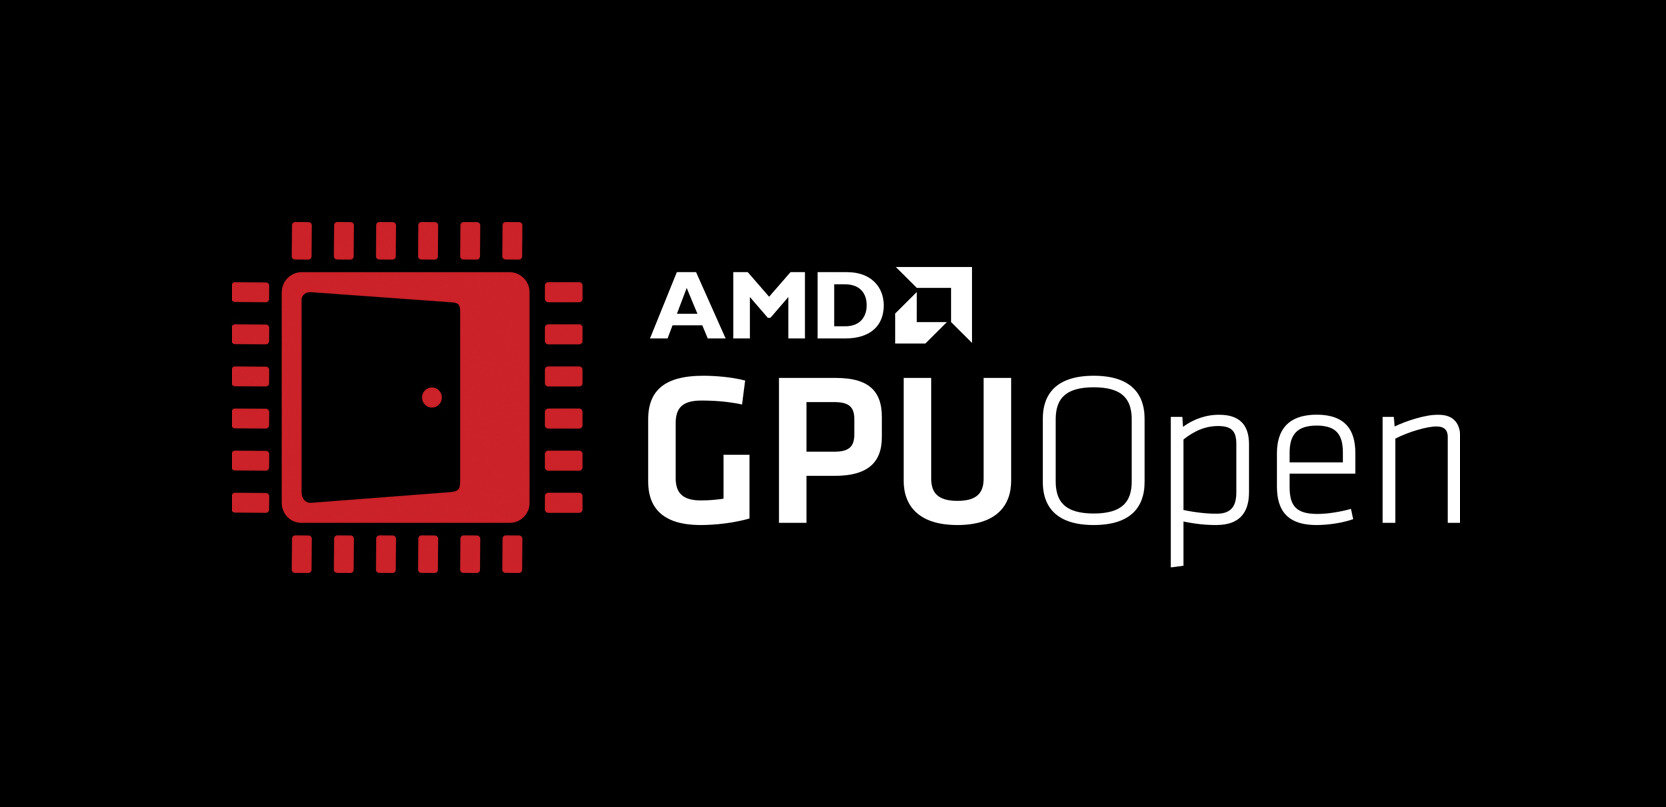 AMD relance son initiative GPUOpen